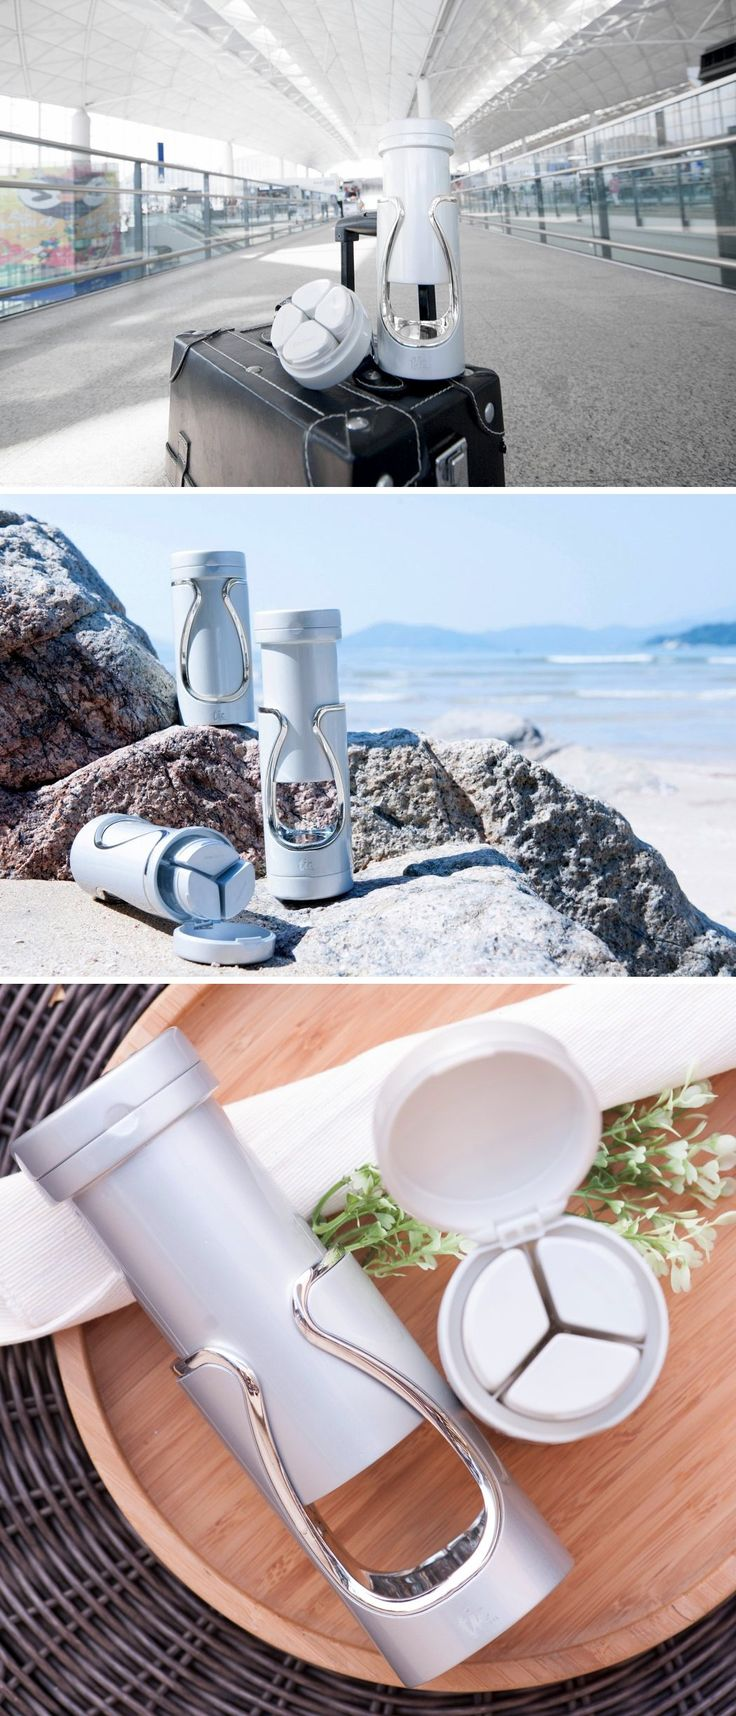 Tic Smart Travel Bottle is designed to hold all your cosmetic liquids in a spill-proof container that even doubles as a dispenser.